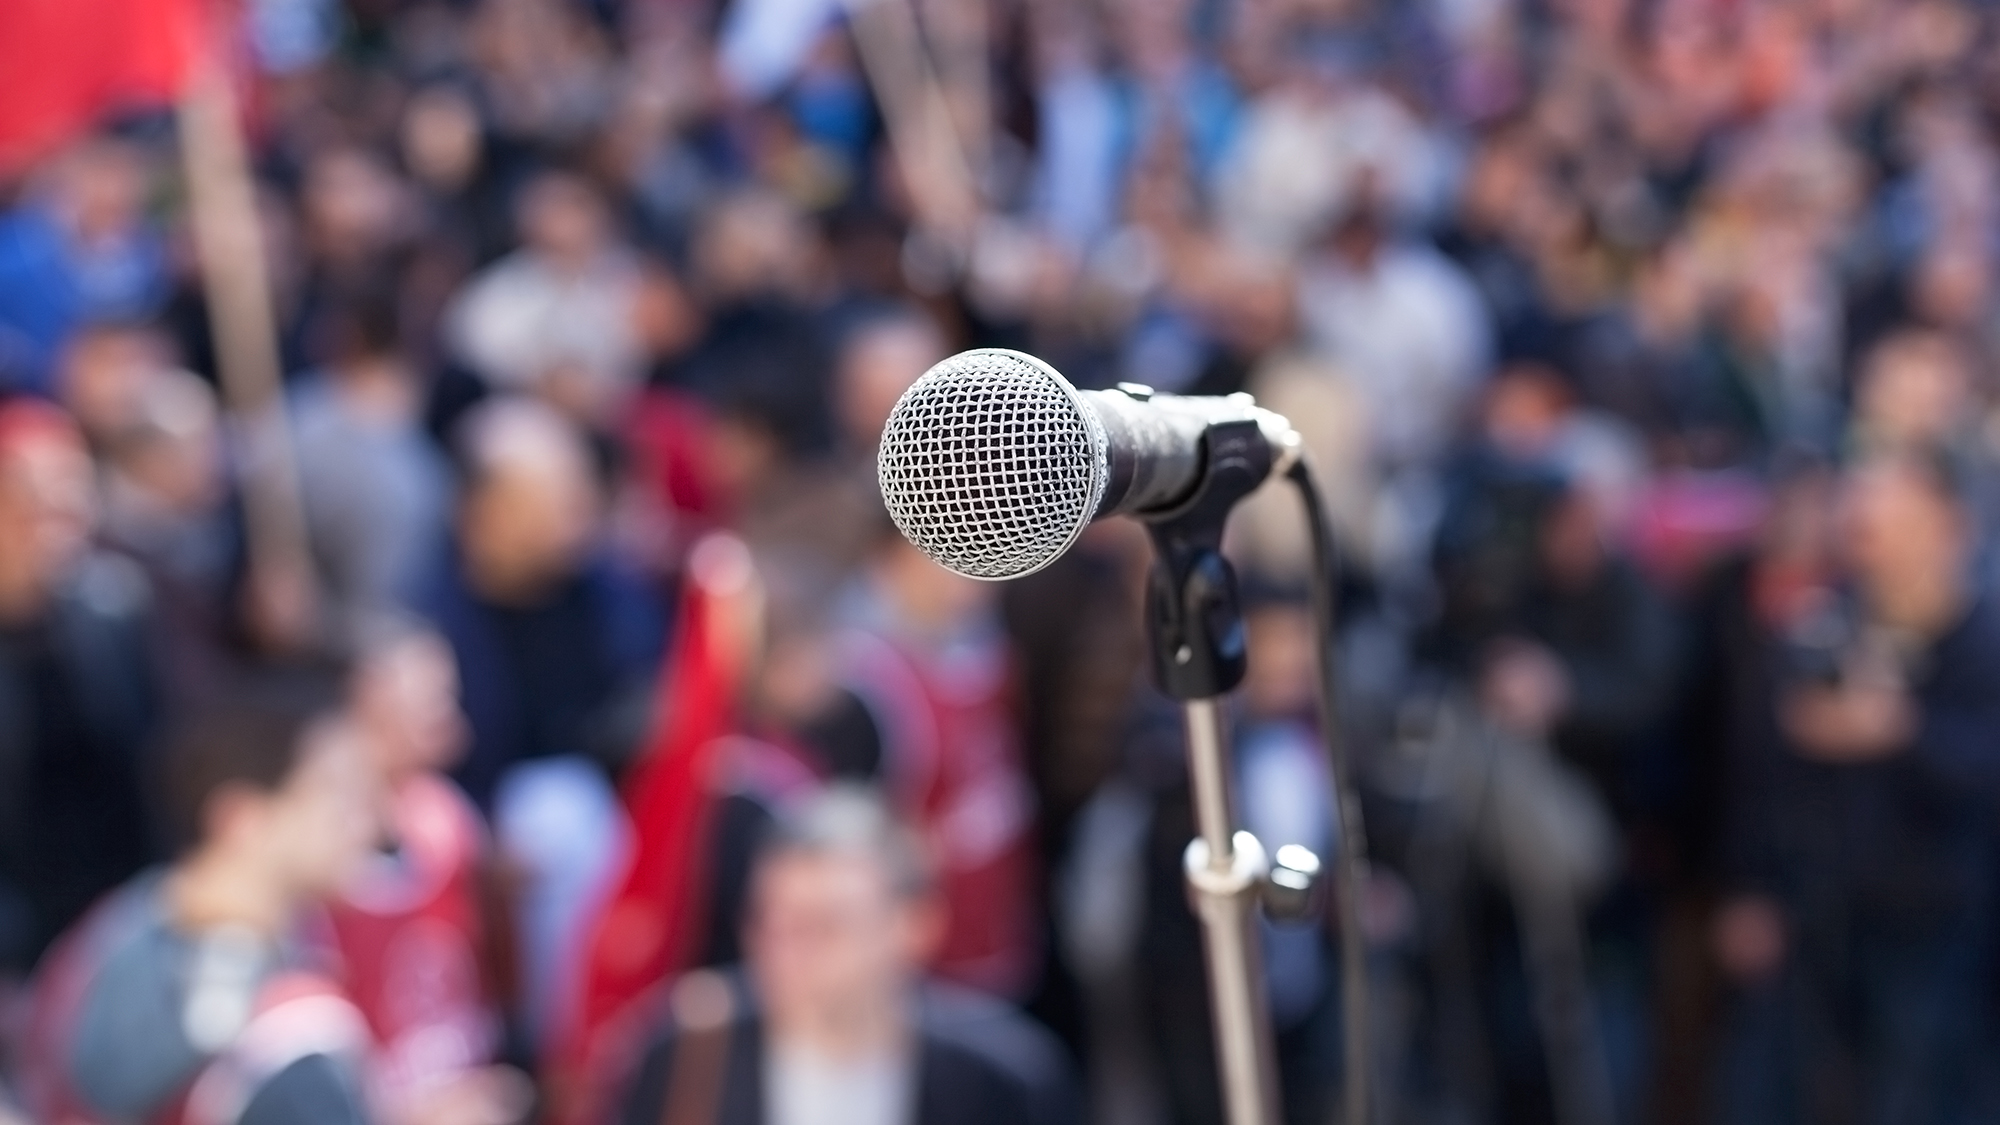 Microphone on stage at an event